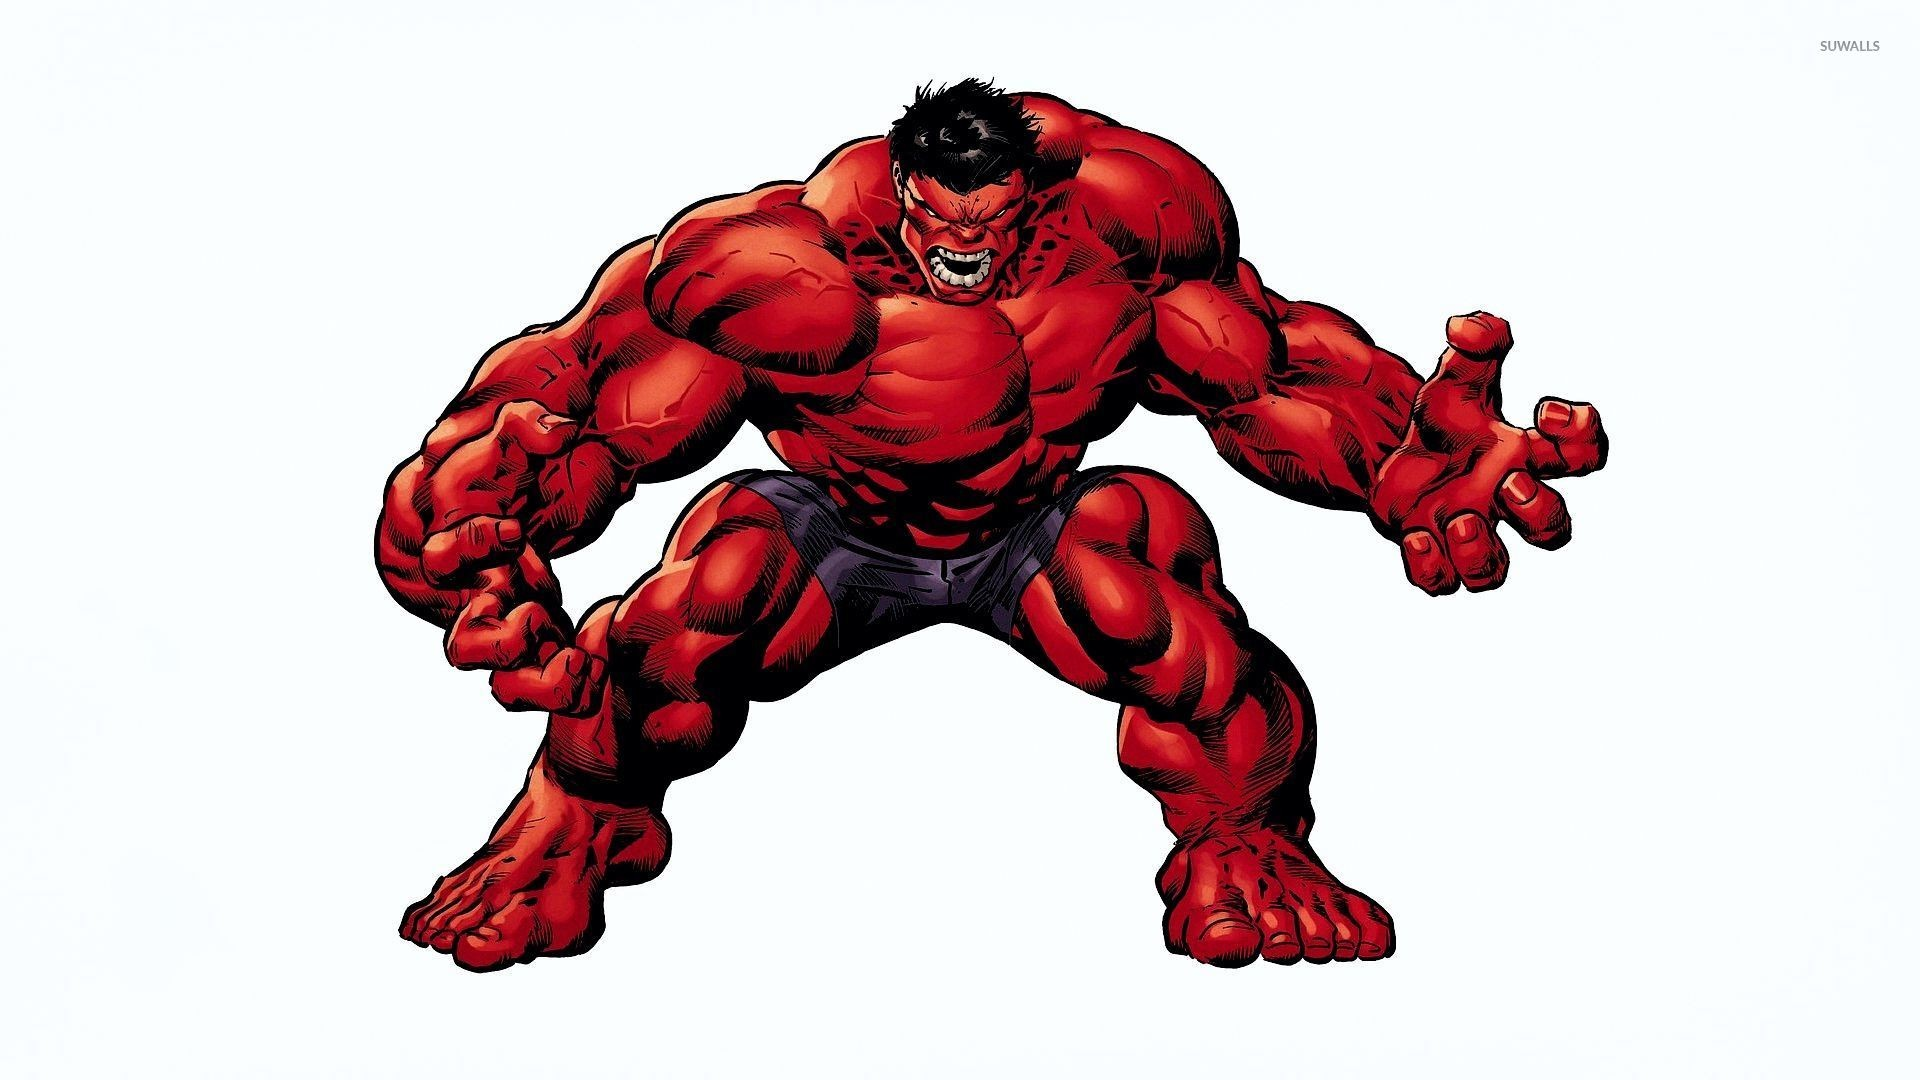 Res: 1920x1080, Angry Red Hulk wallpaper